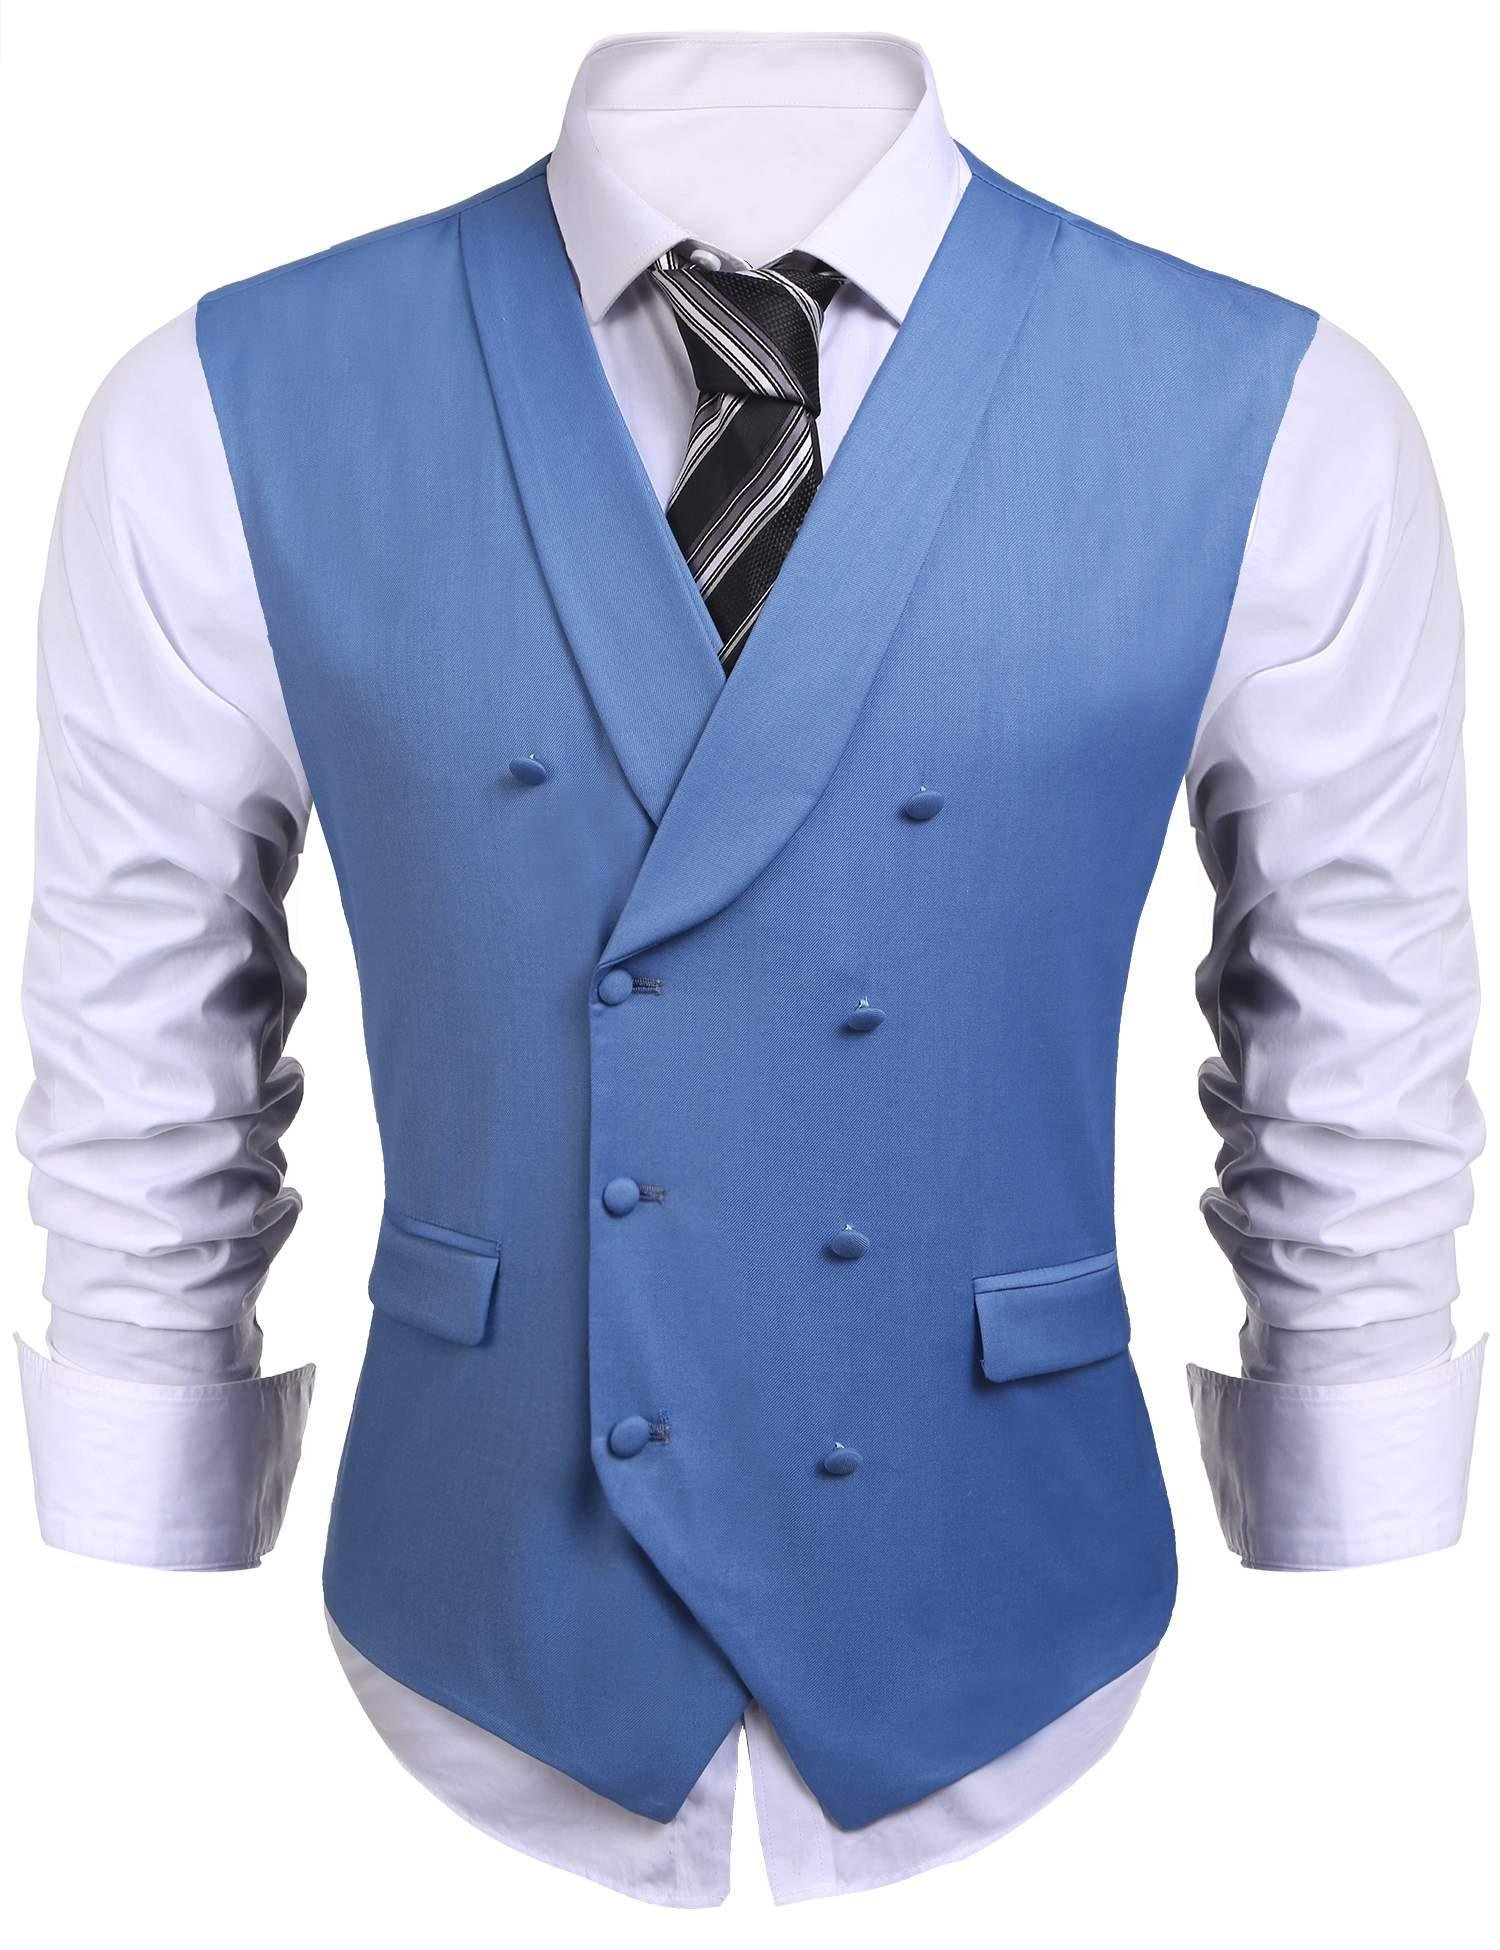 Jinidu Mens Formal Double-breasted V-neck Sleeveless Business Wedding Dress Suit Button Down Vests